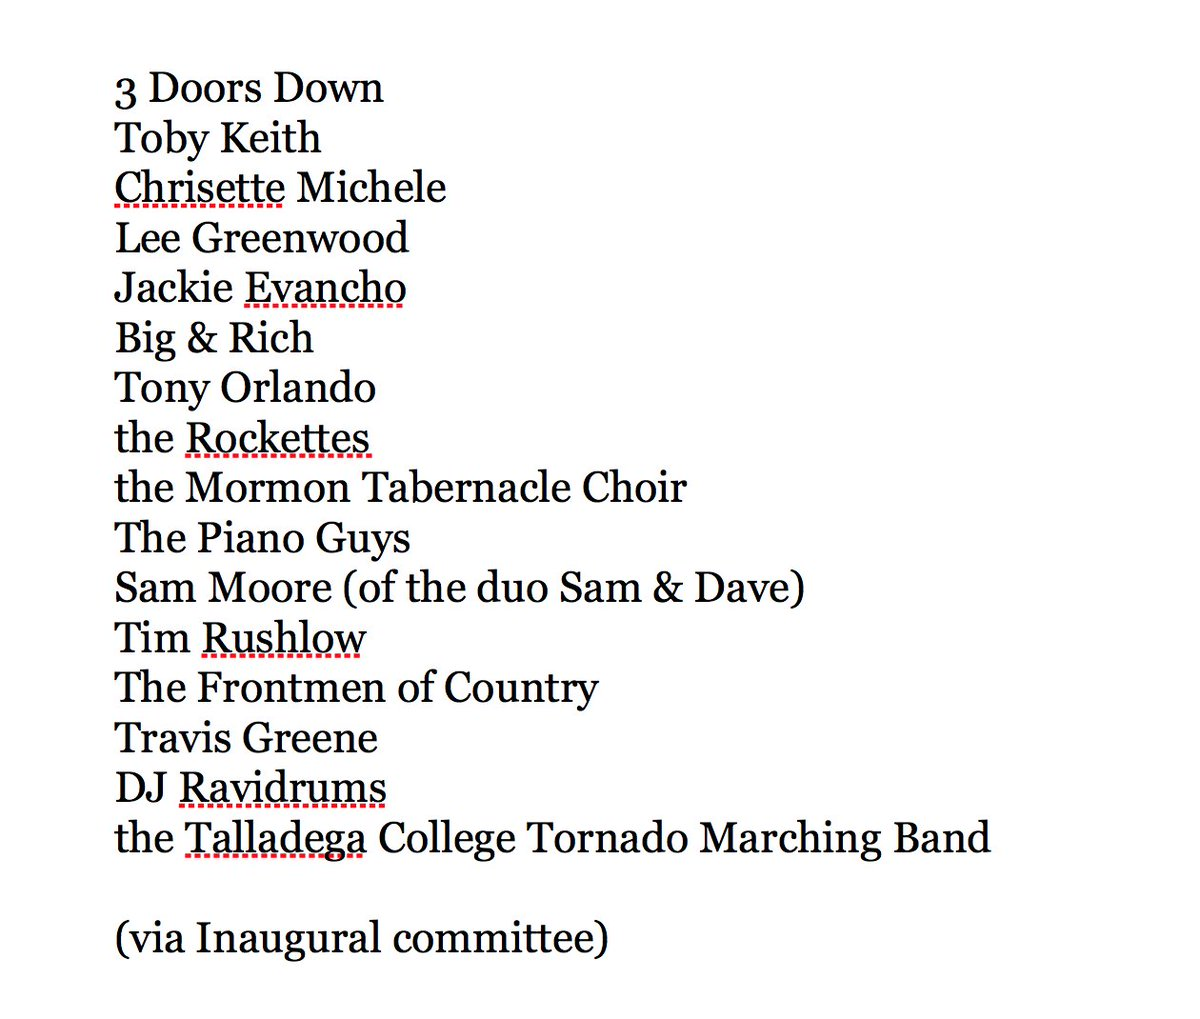 Latest list of entertainers who will perform at Inaugural: https://t.co/rUH352Ajqj